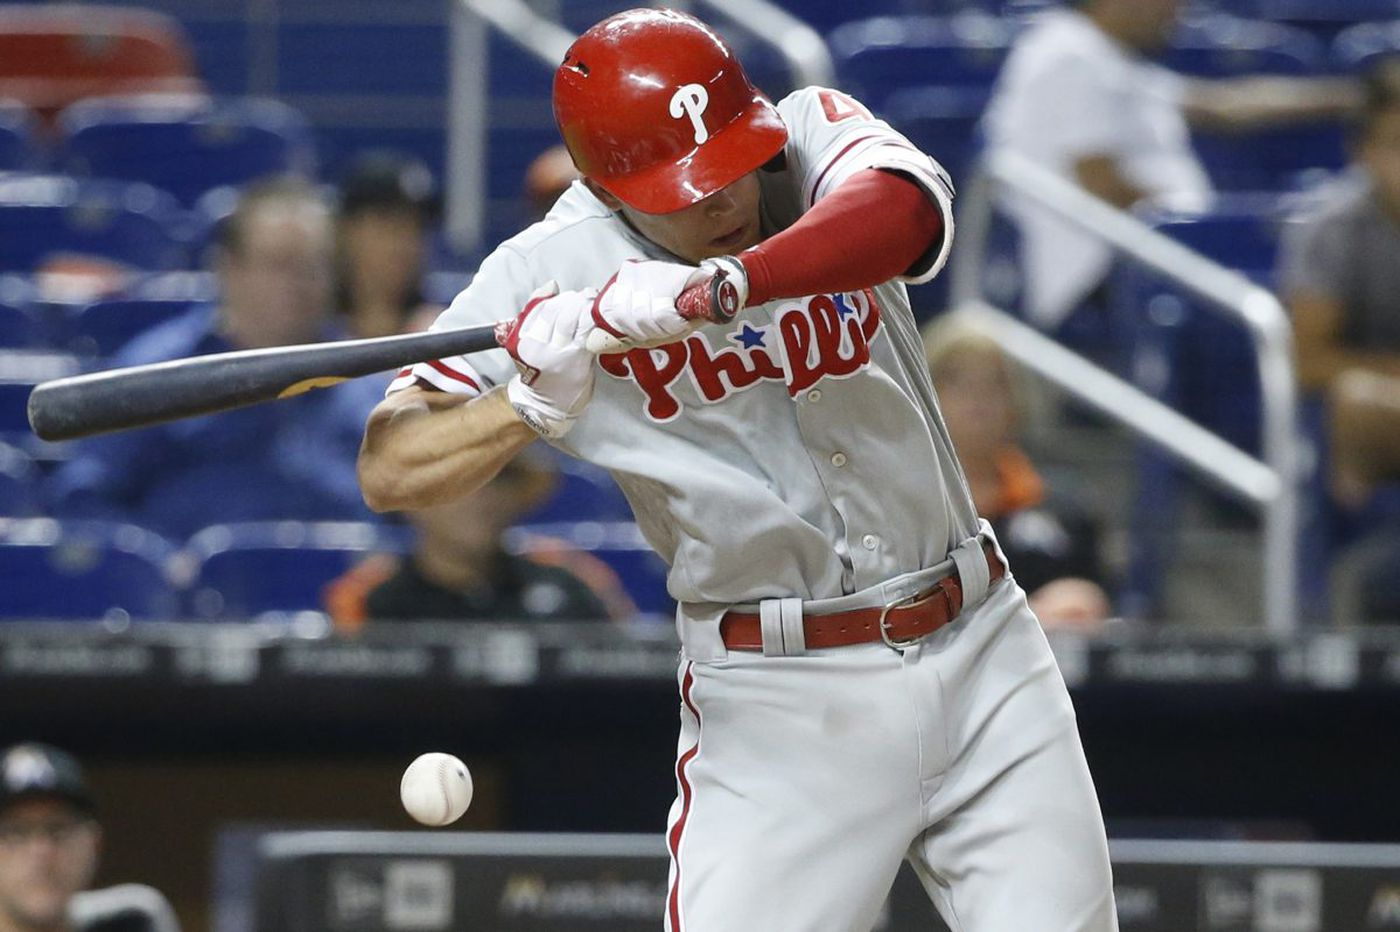 Scott Kingery aiming for Friday return to Phillies' lineup